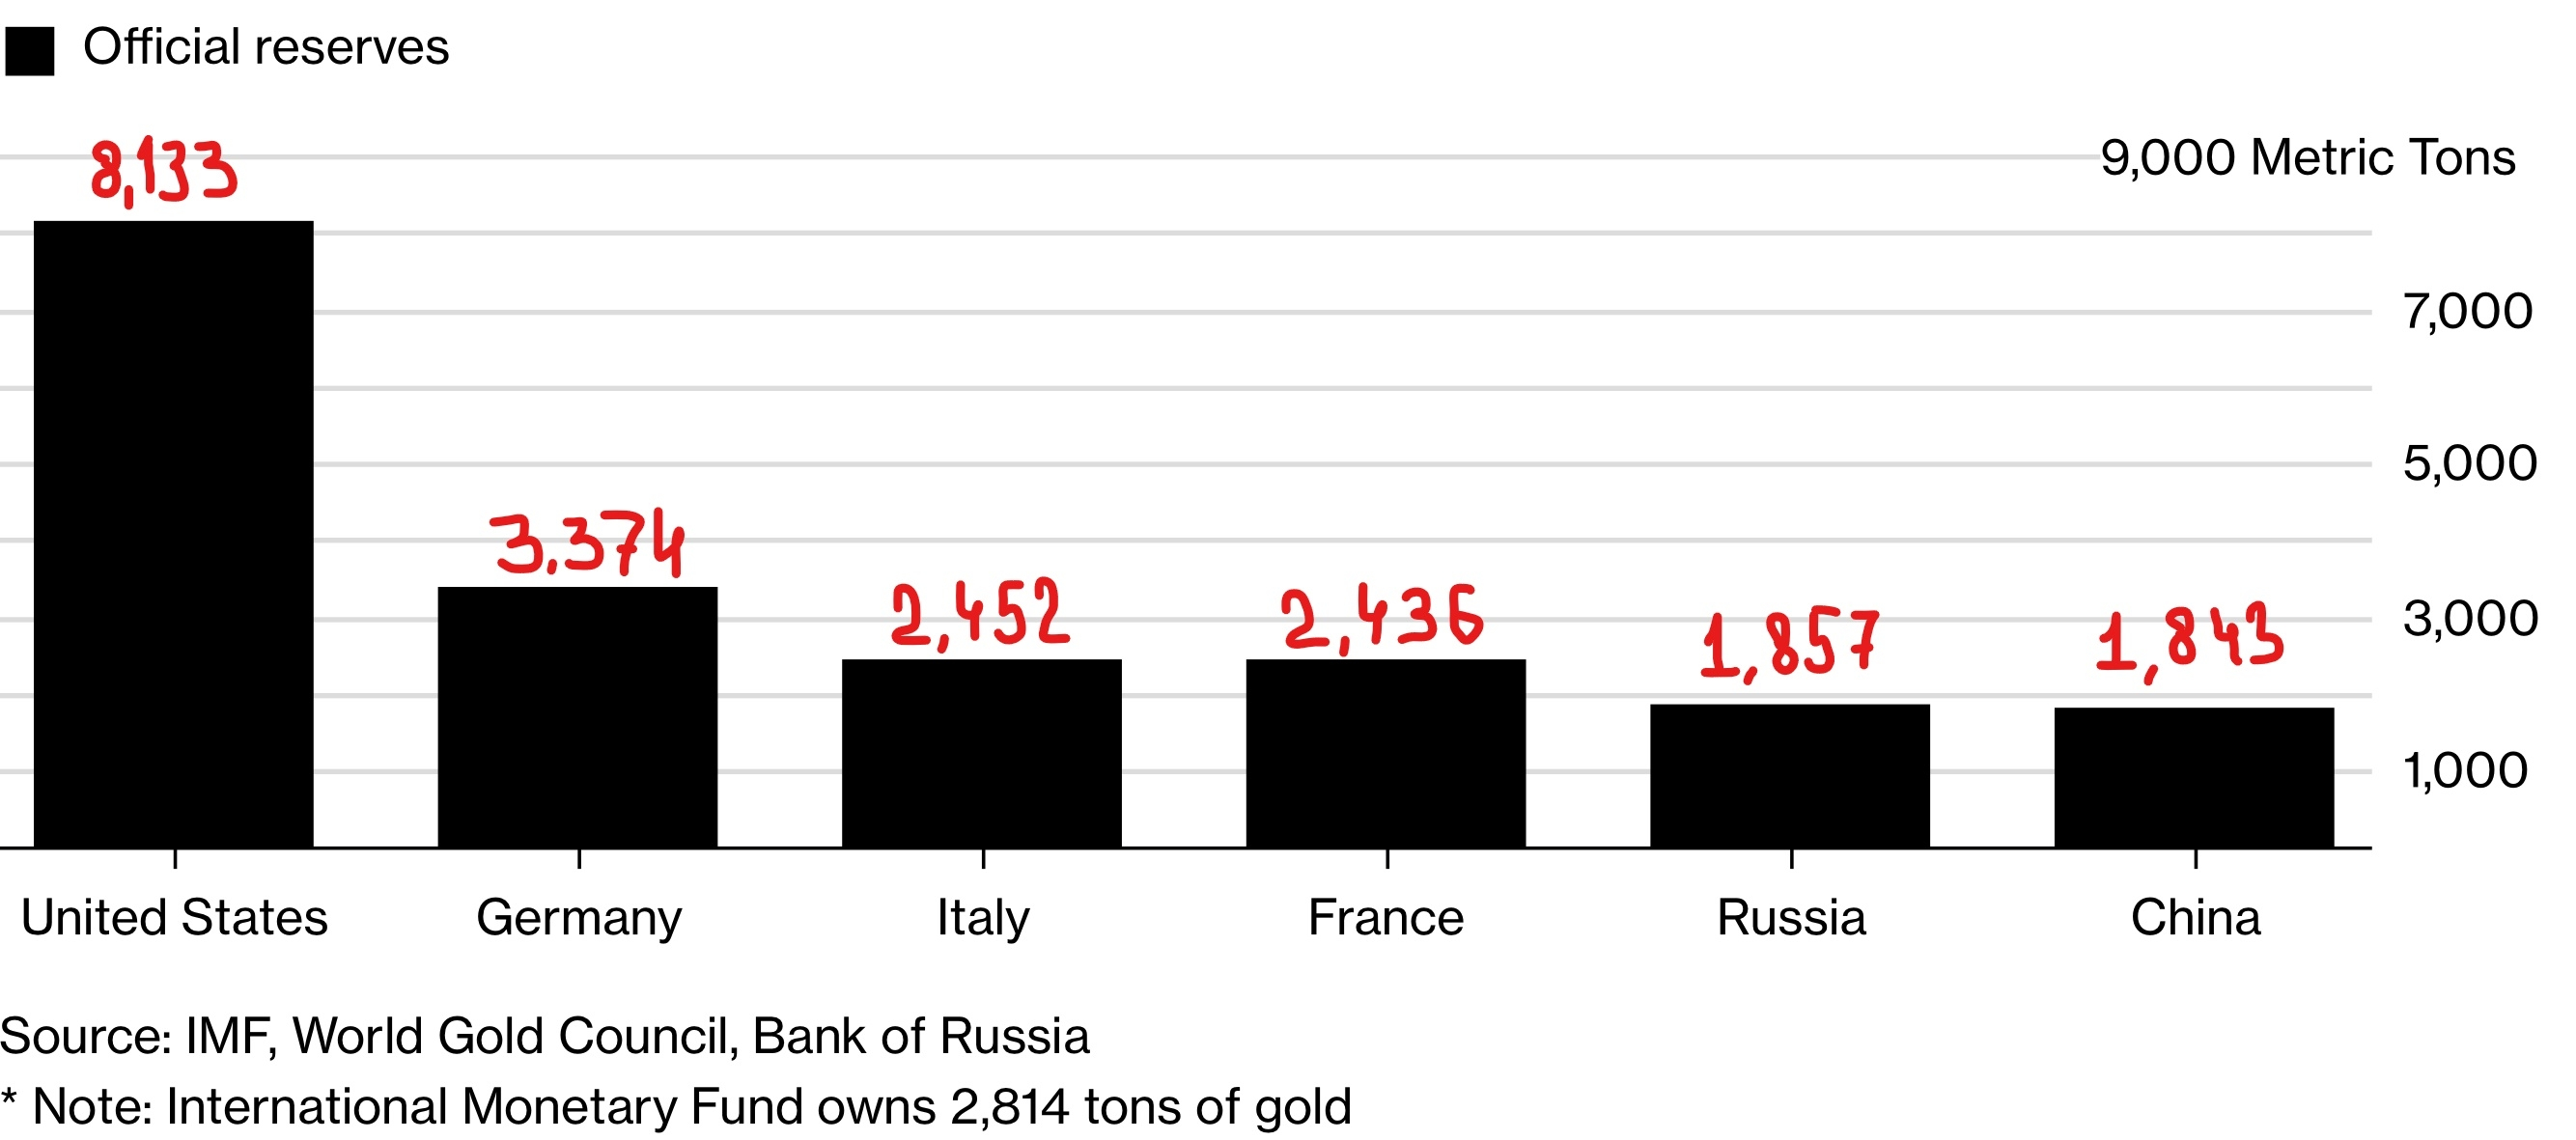 Reserves of gold by country